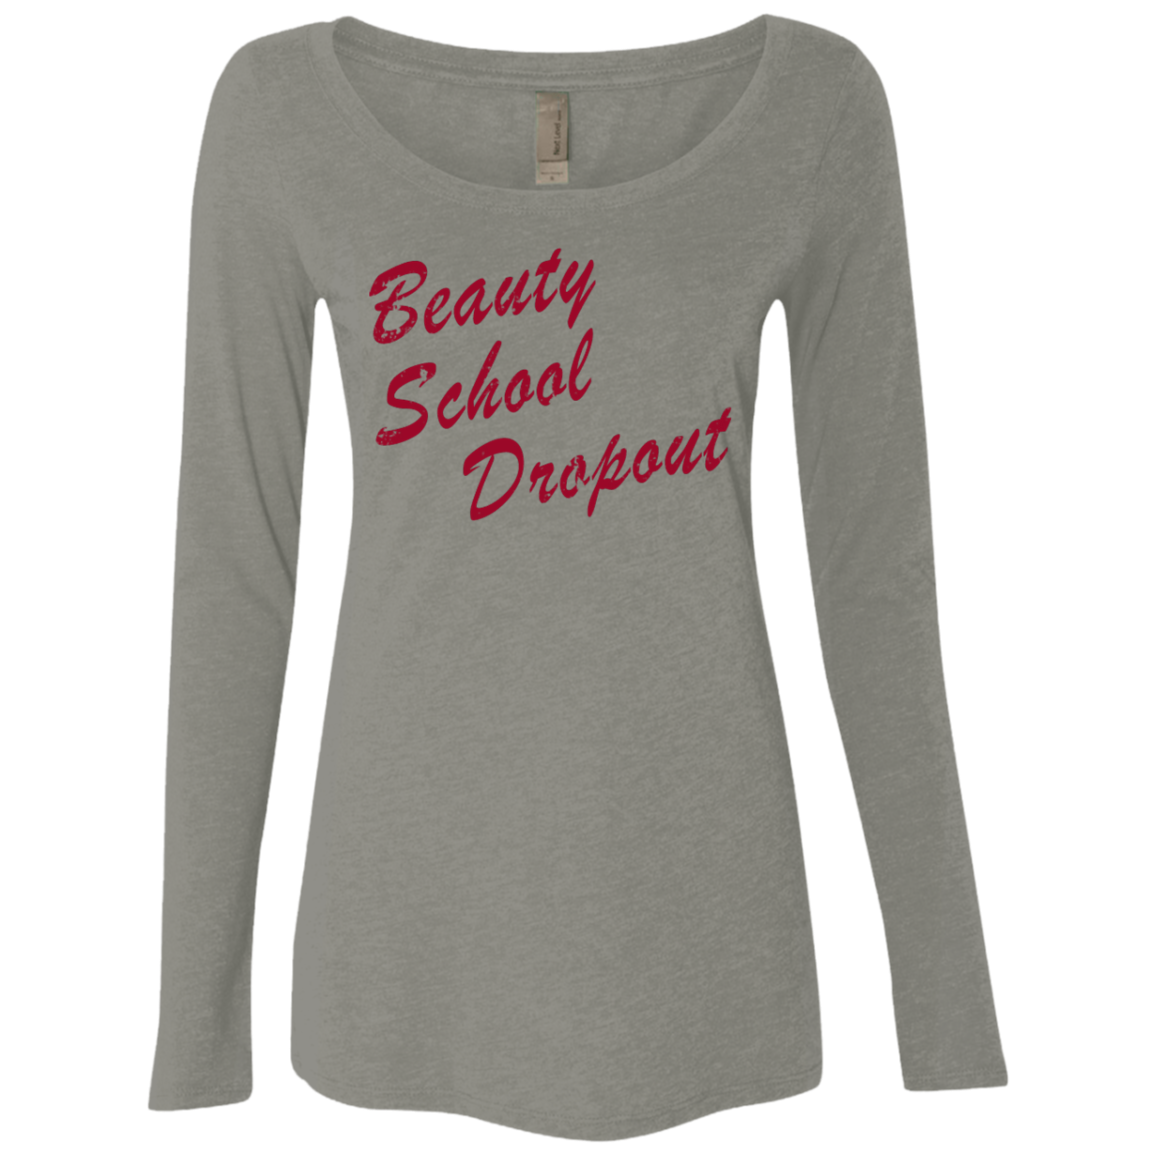 Beauty School Dropout Women's Long Sleeve Tee